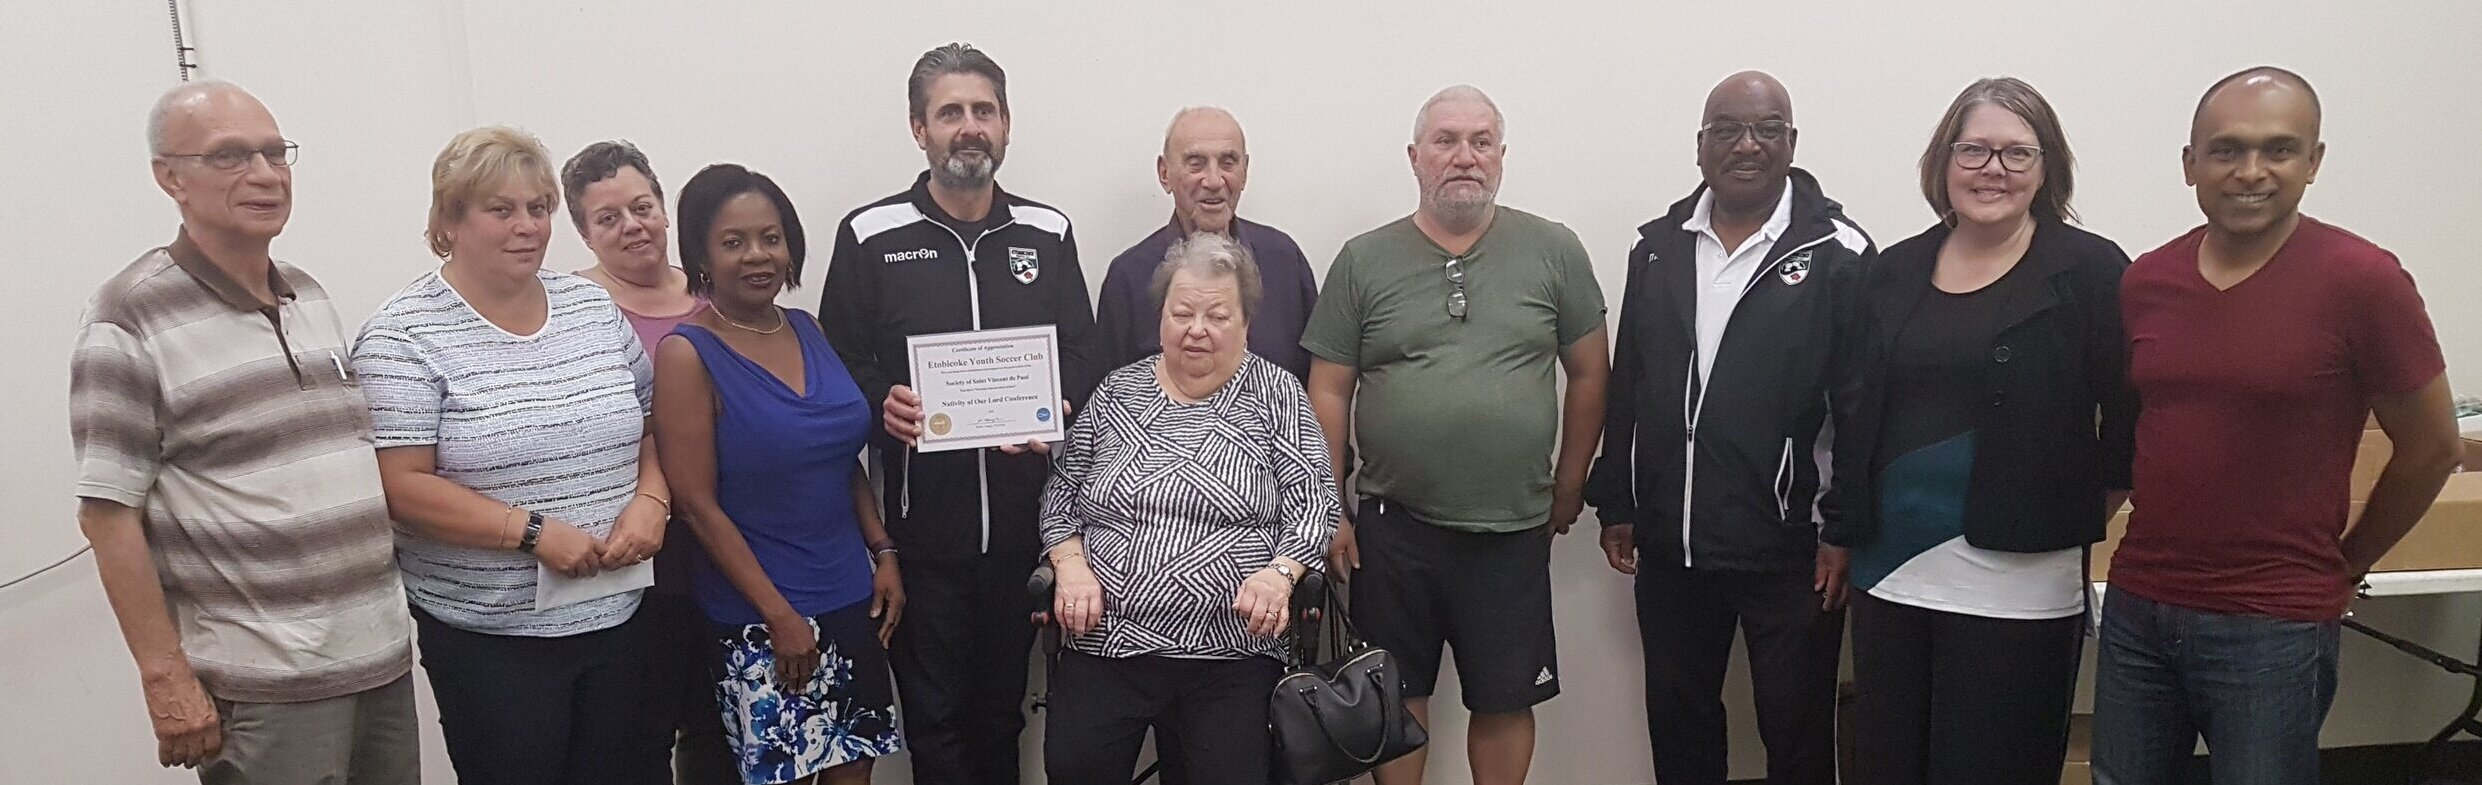 EYSC Board Members receiving a plaque of recognition from the Society of Saint Vincent de Paul for our community contribution.